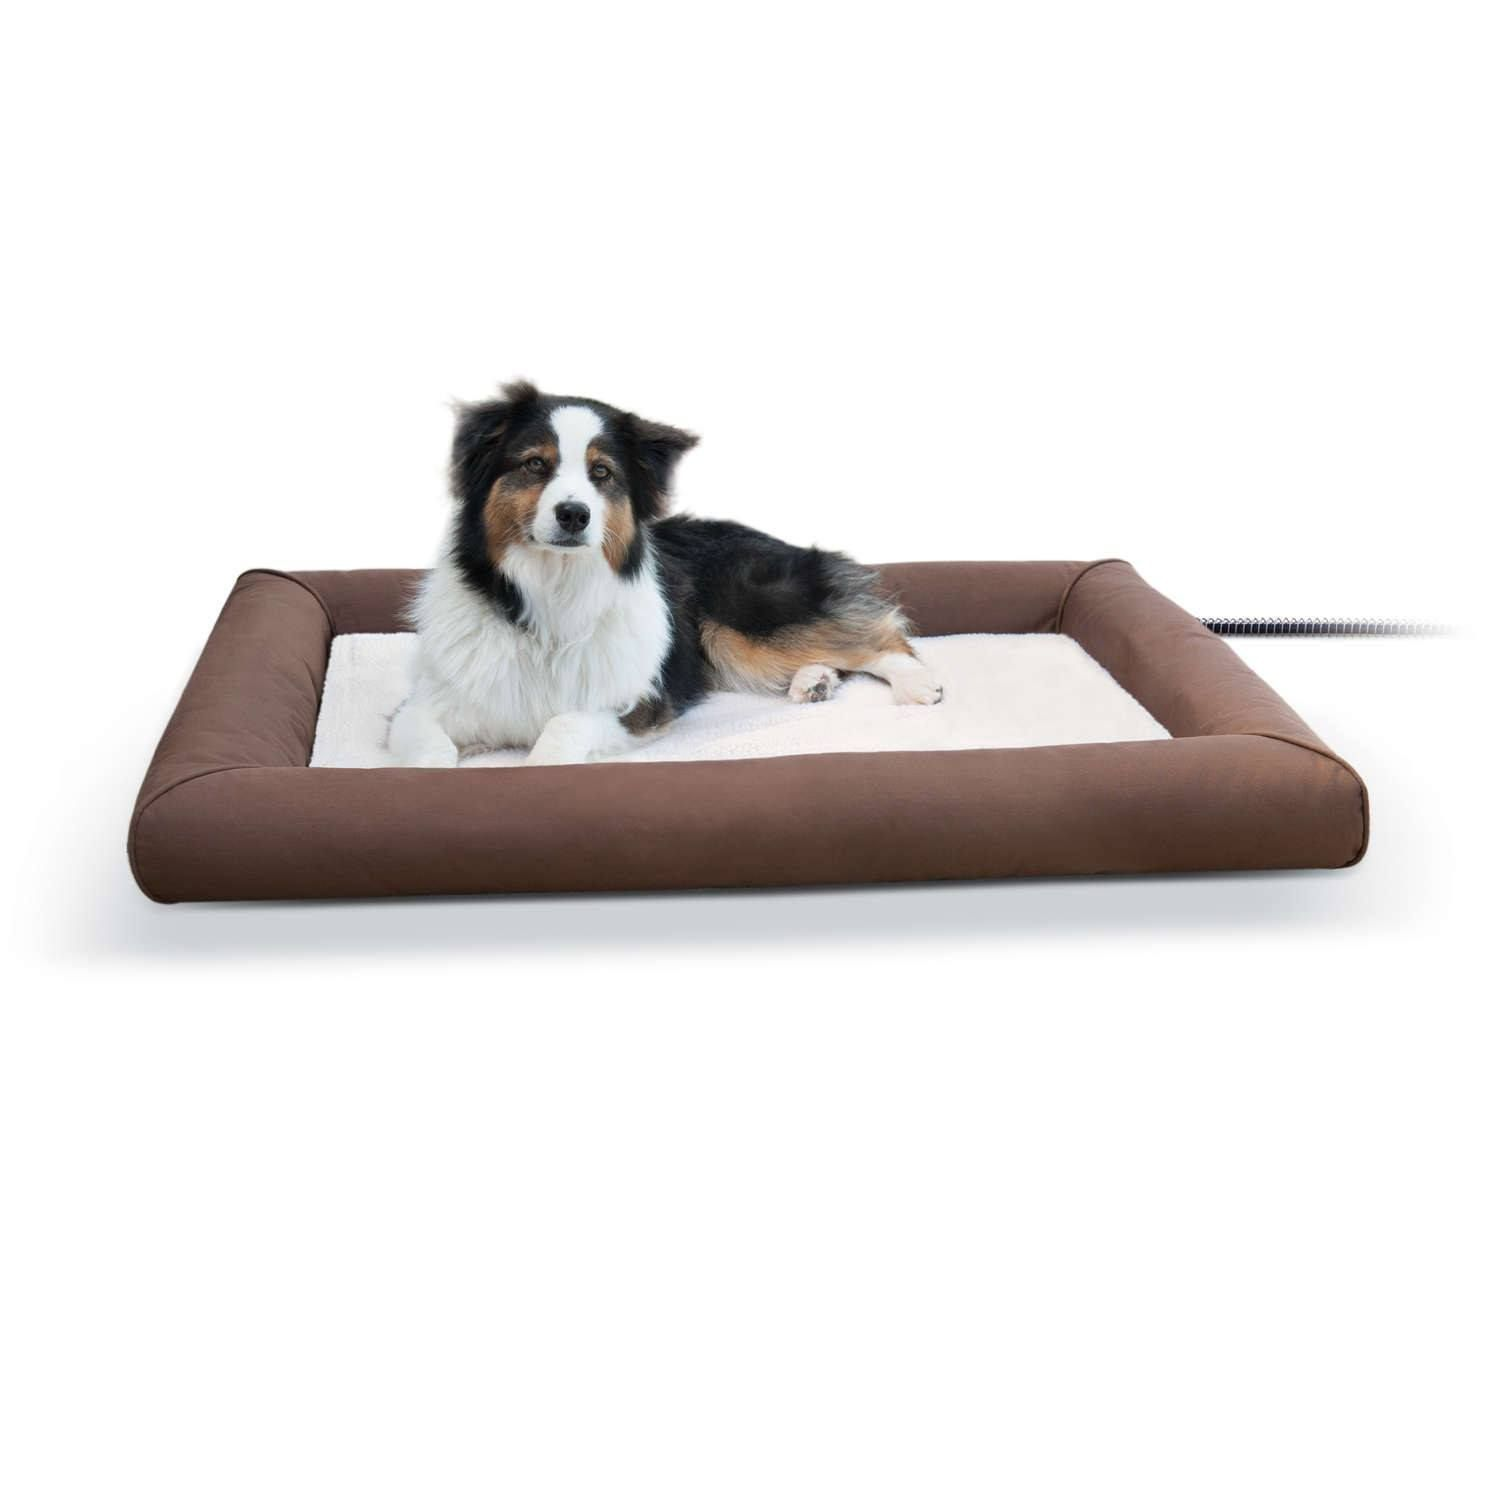 Keep Your Pets Warm And Snug With The Deluxe Lectro Soft Outdoor Heated Pet Bed It S Hard To Find A Soft Outdoor Bed That S Also Heated And This With Images Heated Dog